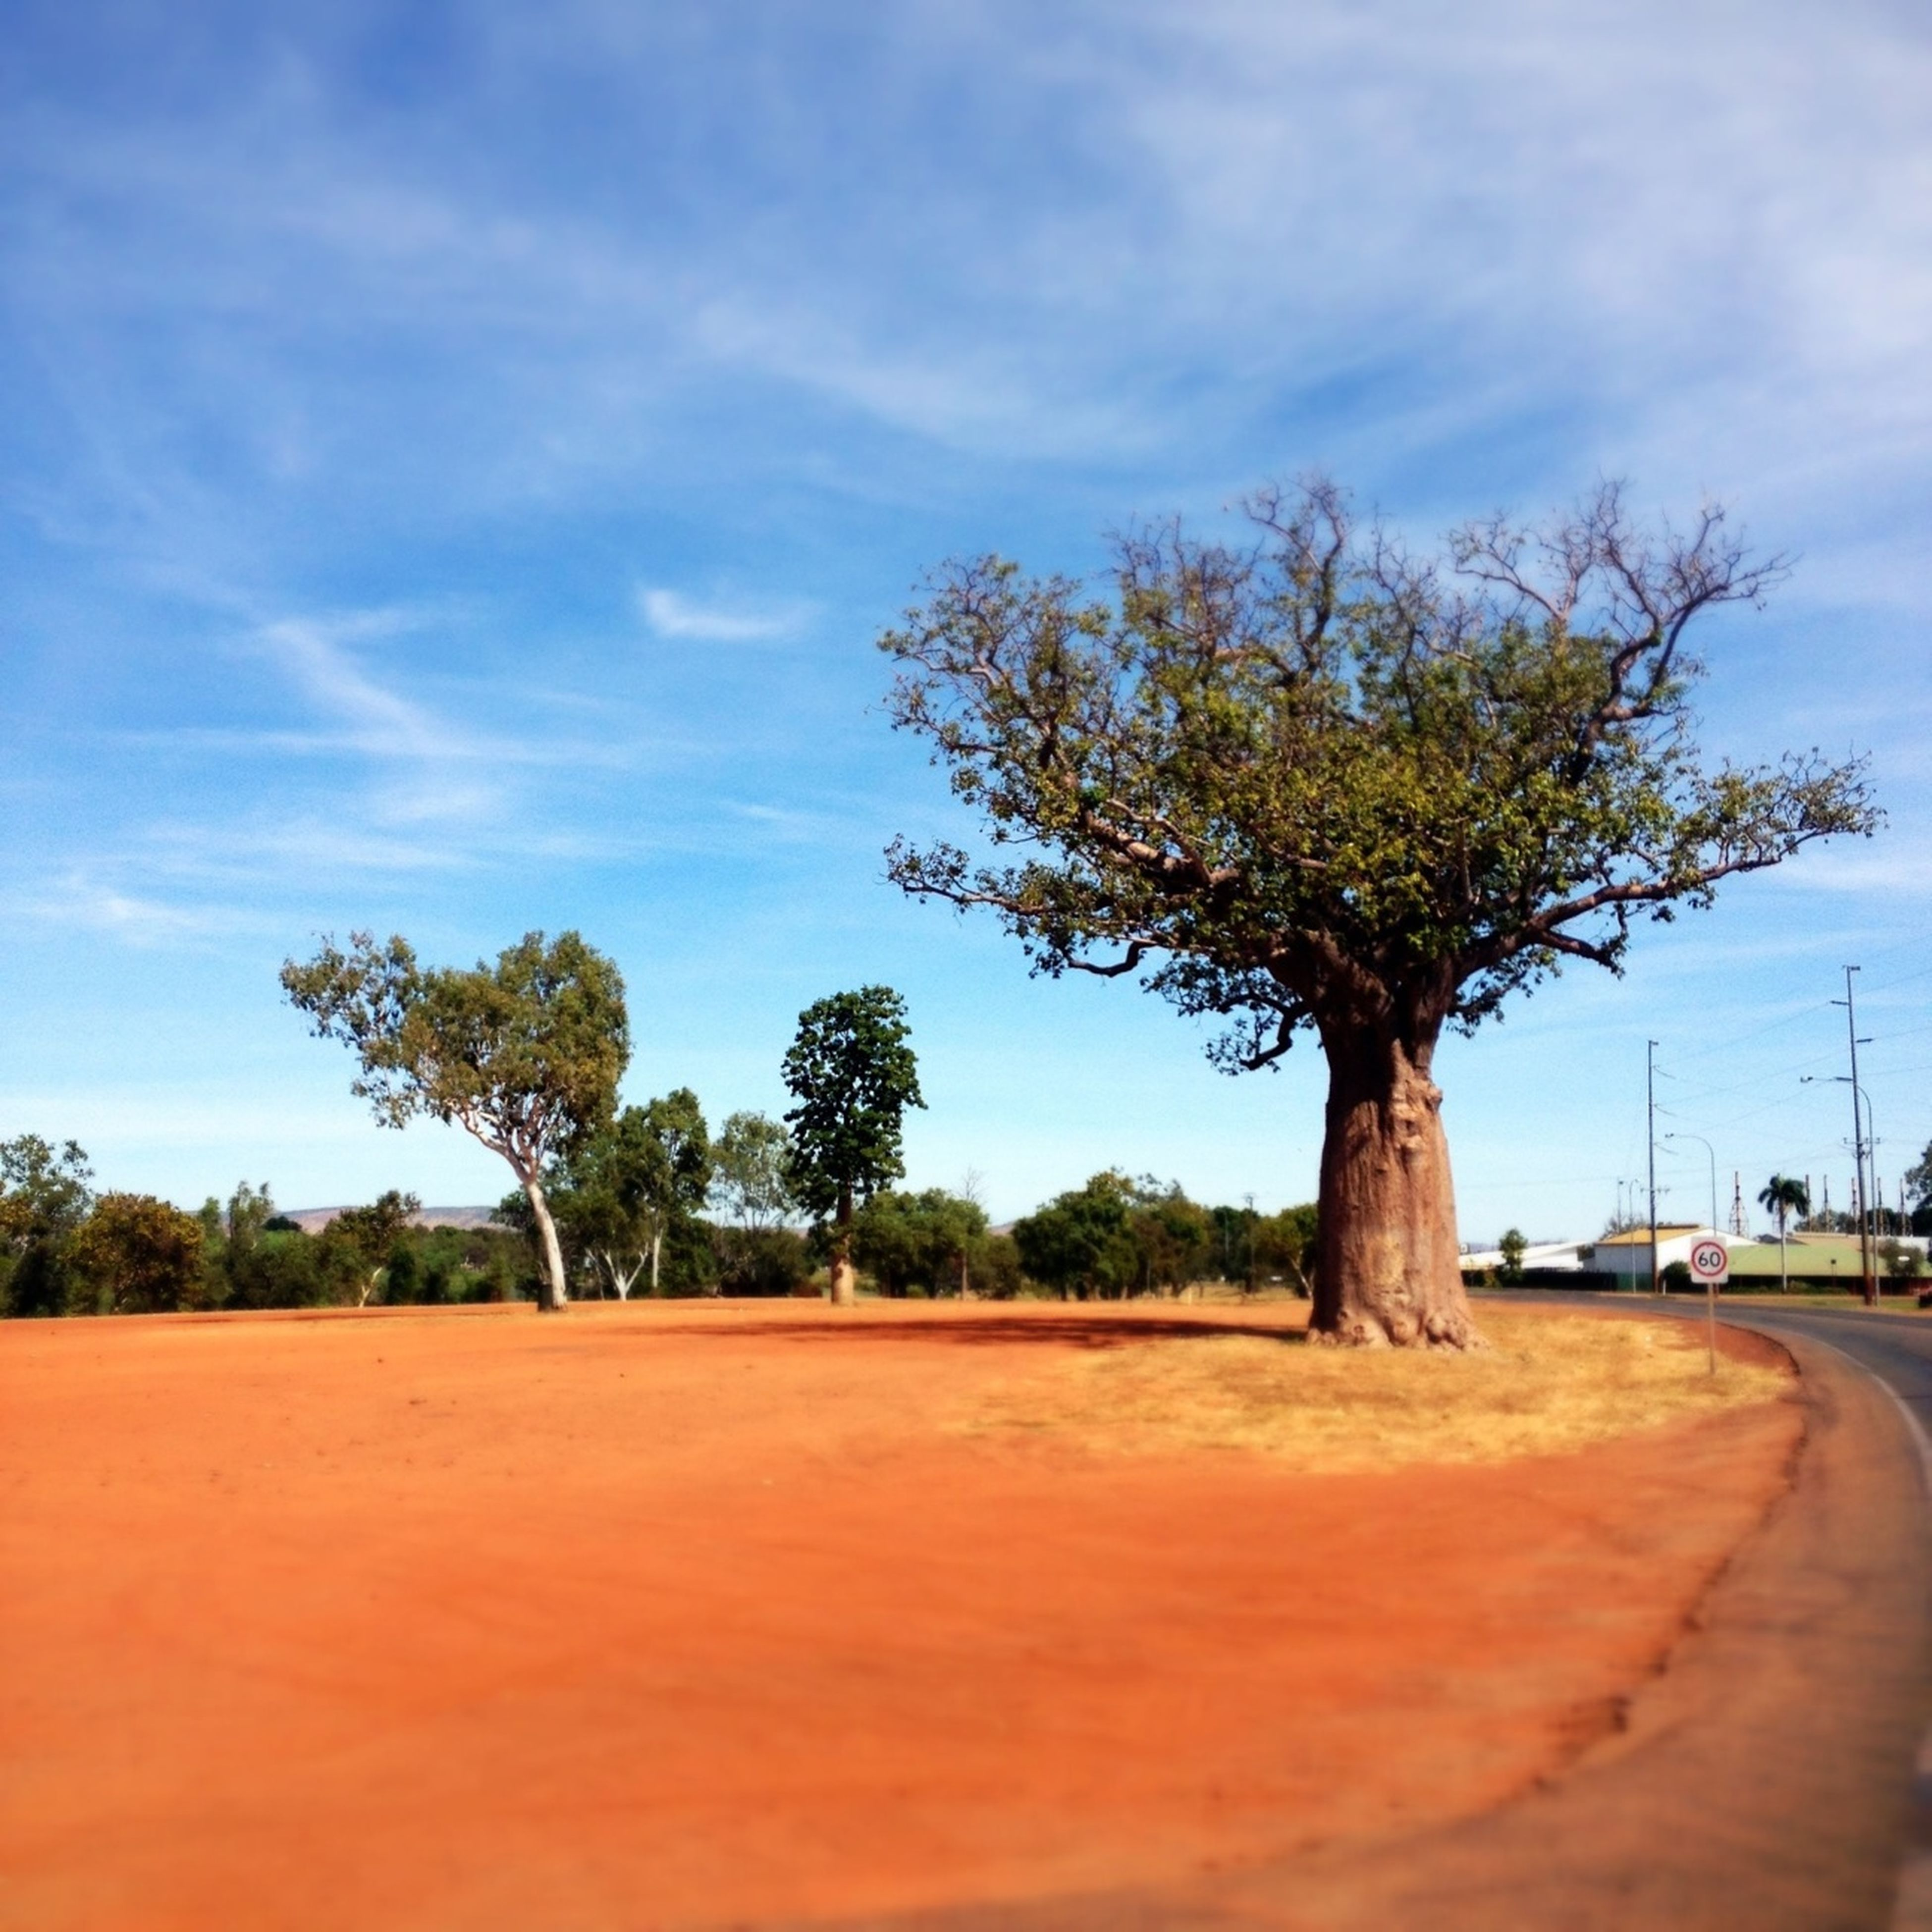 tree, sky, tranquility, tranquil scene, nature, scenics, landscape, cloud - sky, cloud, tree trunk, beauty in nature, growth, palm tree, bare tree, road, branch, solitude, day, outdoors, non-urban scene